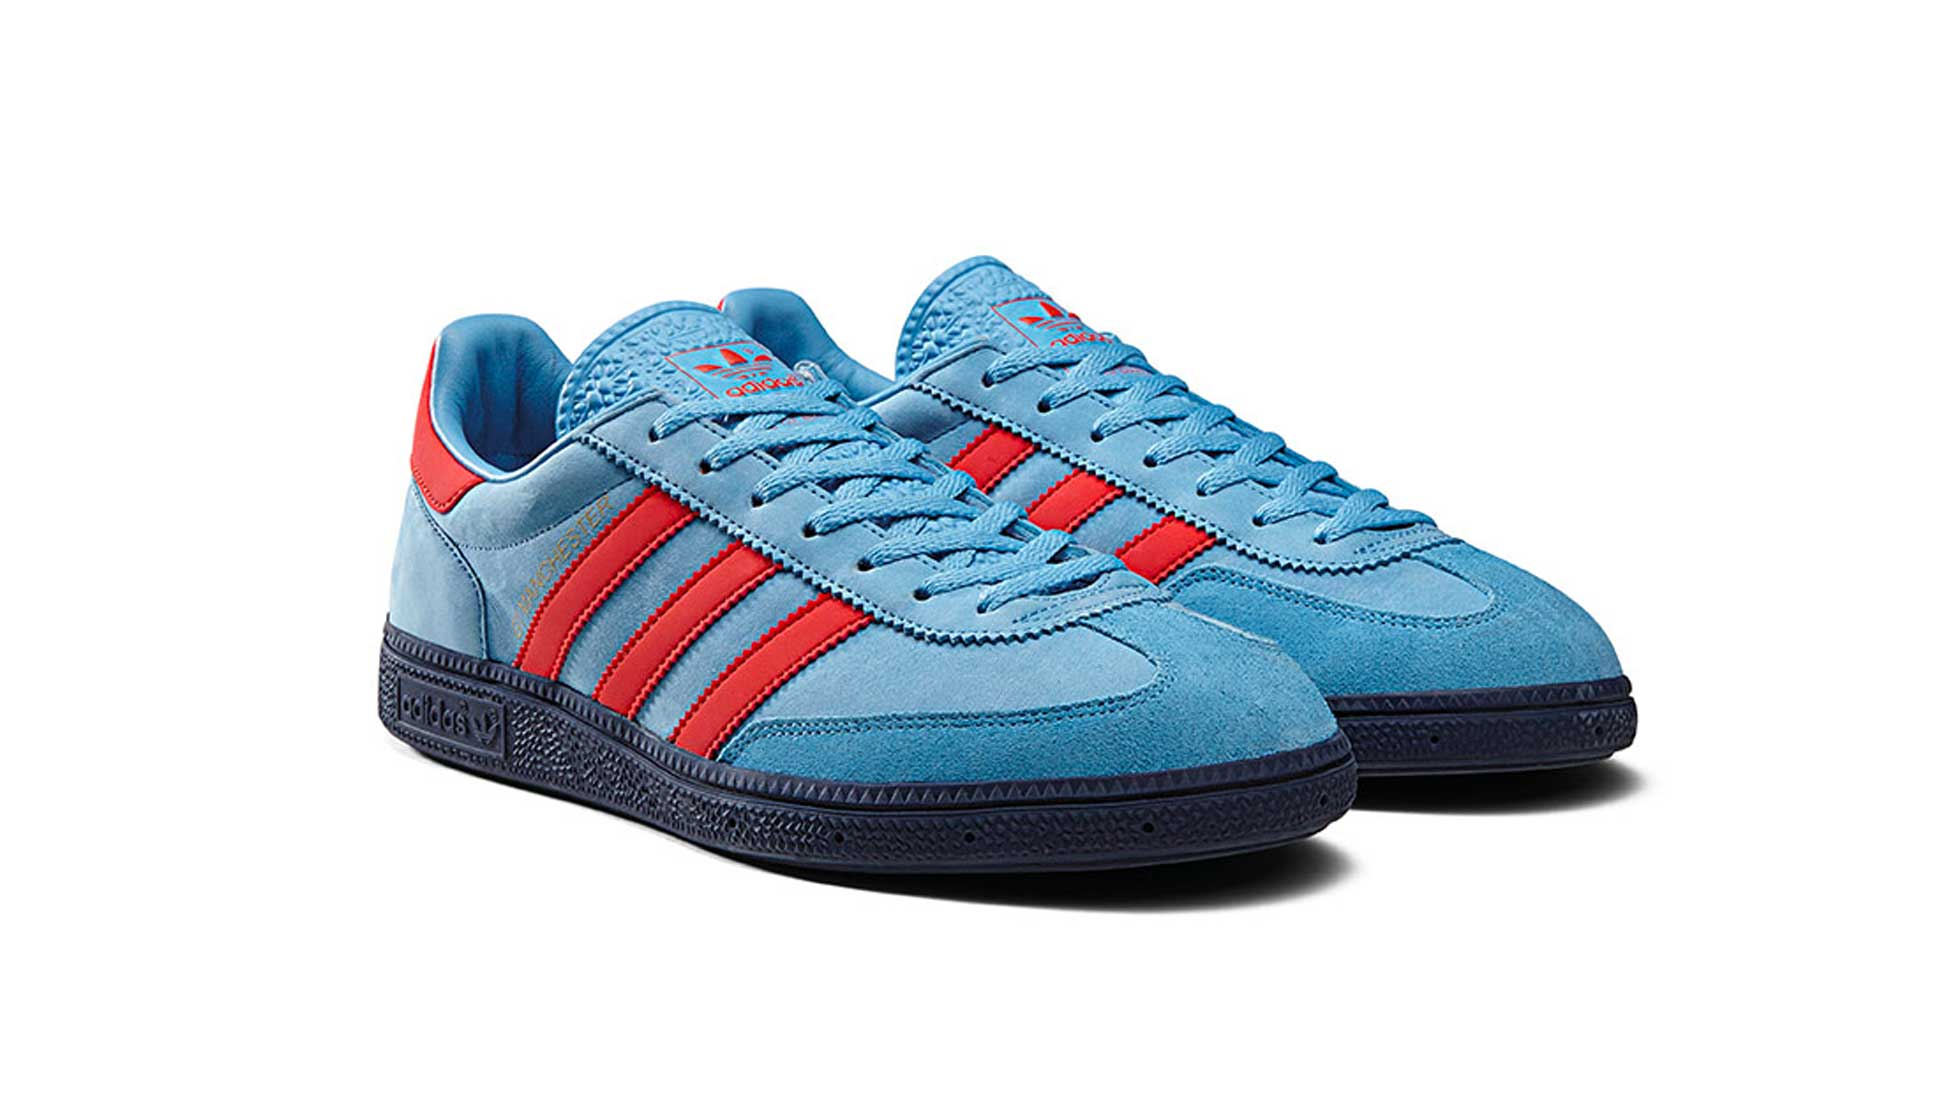 the latest f3839 811e3 adidas unveil SPEZIAL AW16 Footwear Collection - SoccerBible.